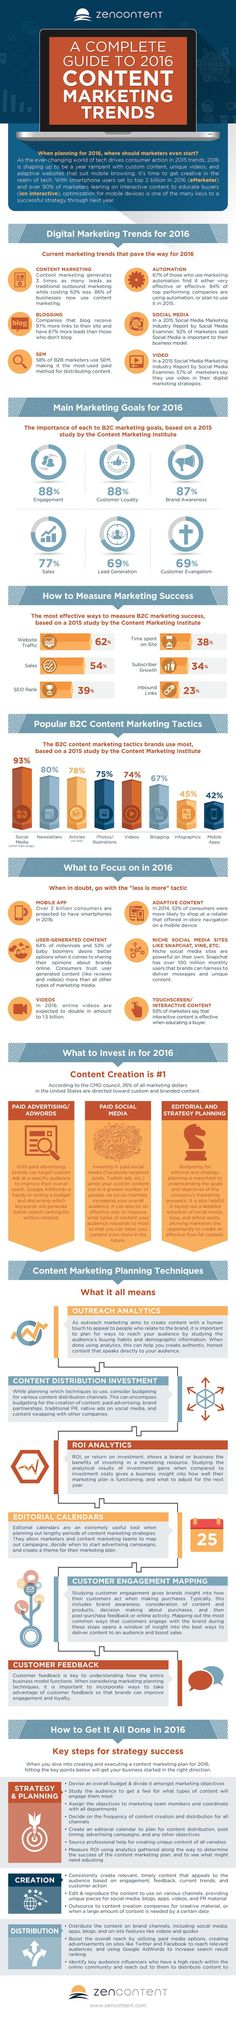 New infographic reveals content marketing budgets benchmarks and the key trends for 2016